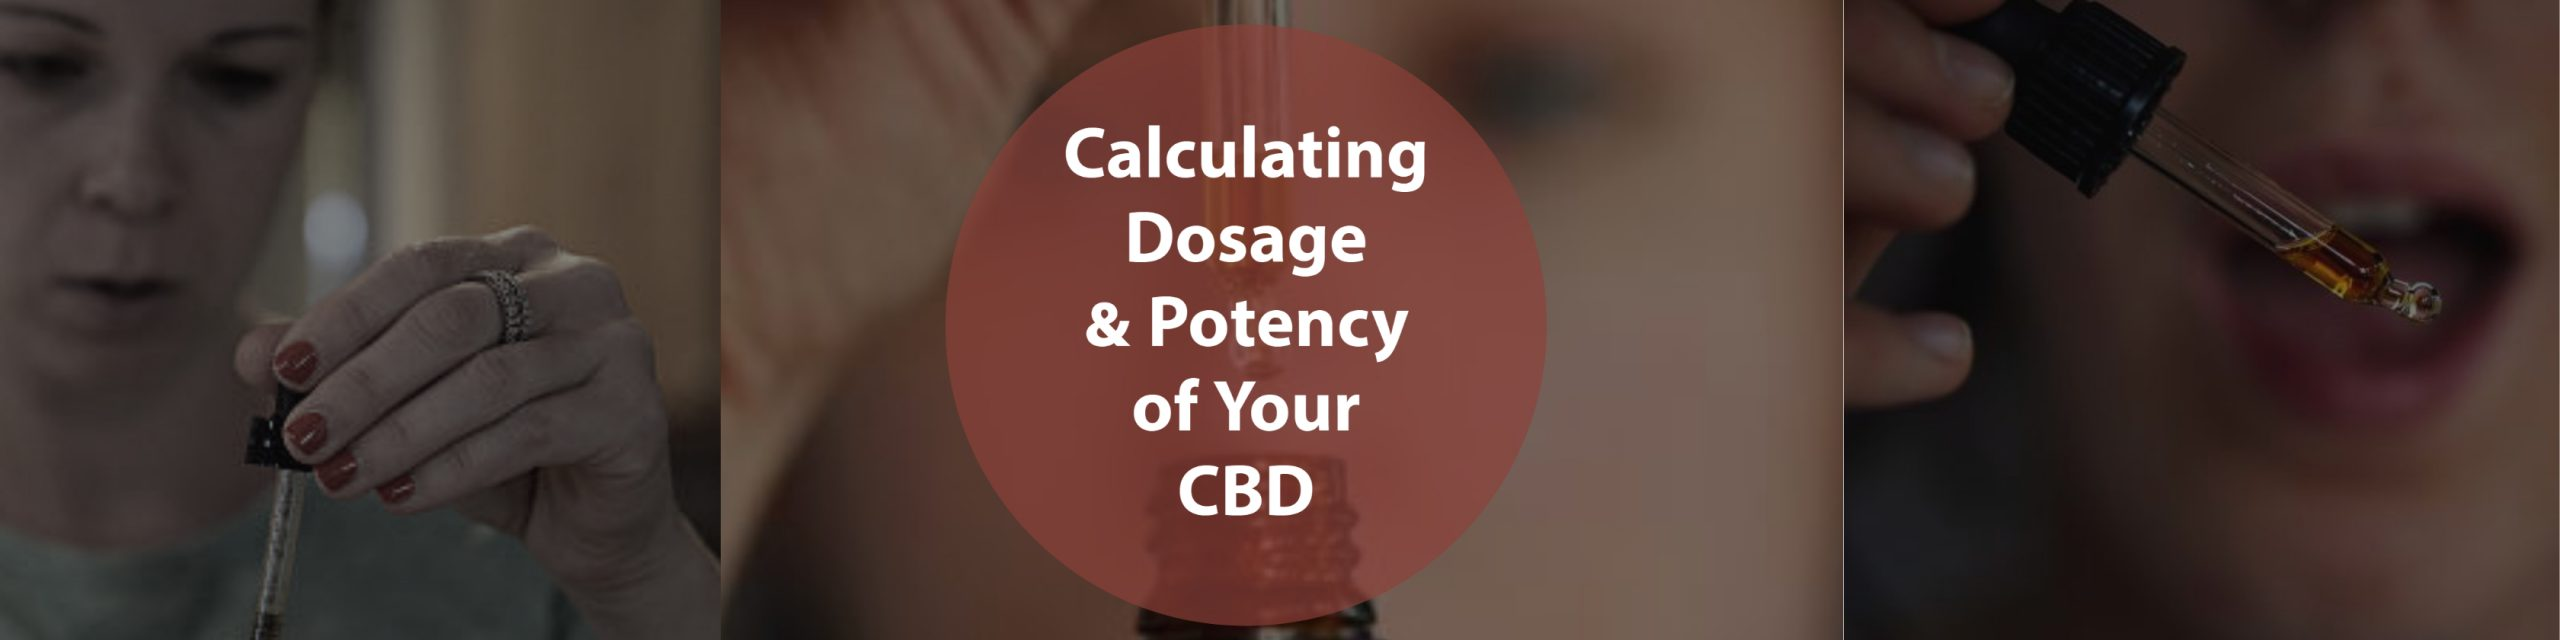 Calculating Dosage & Potency of Your CBD